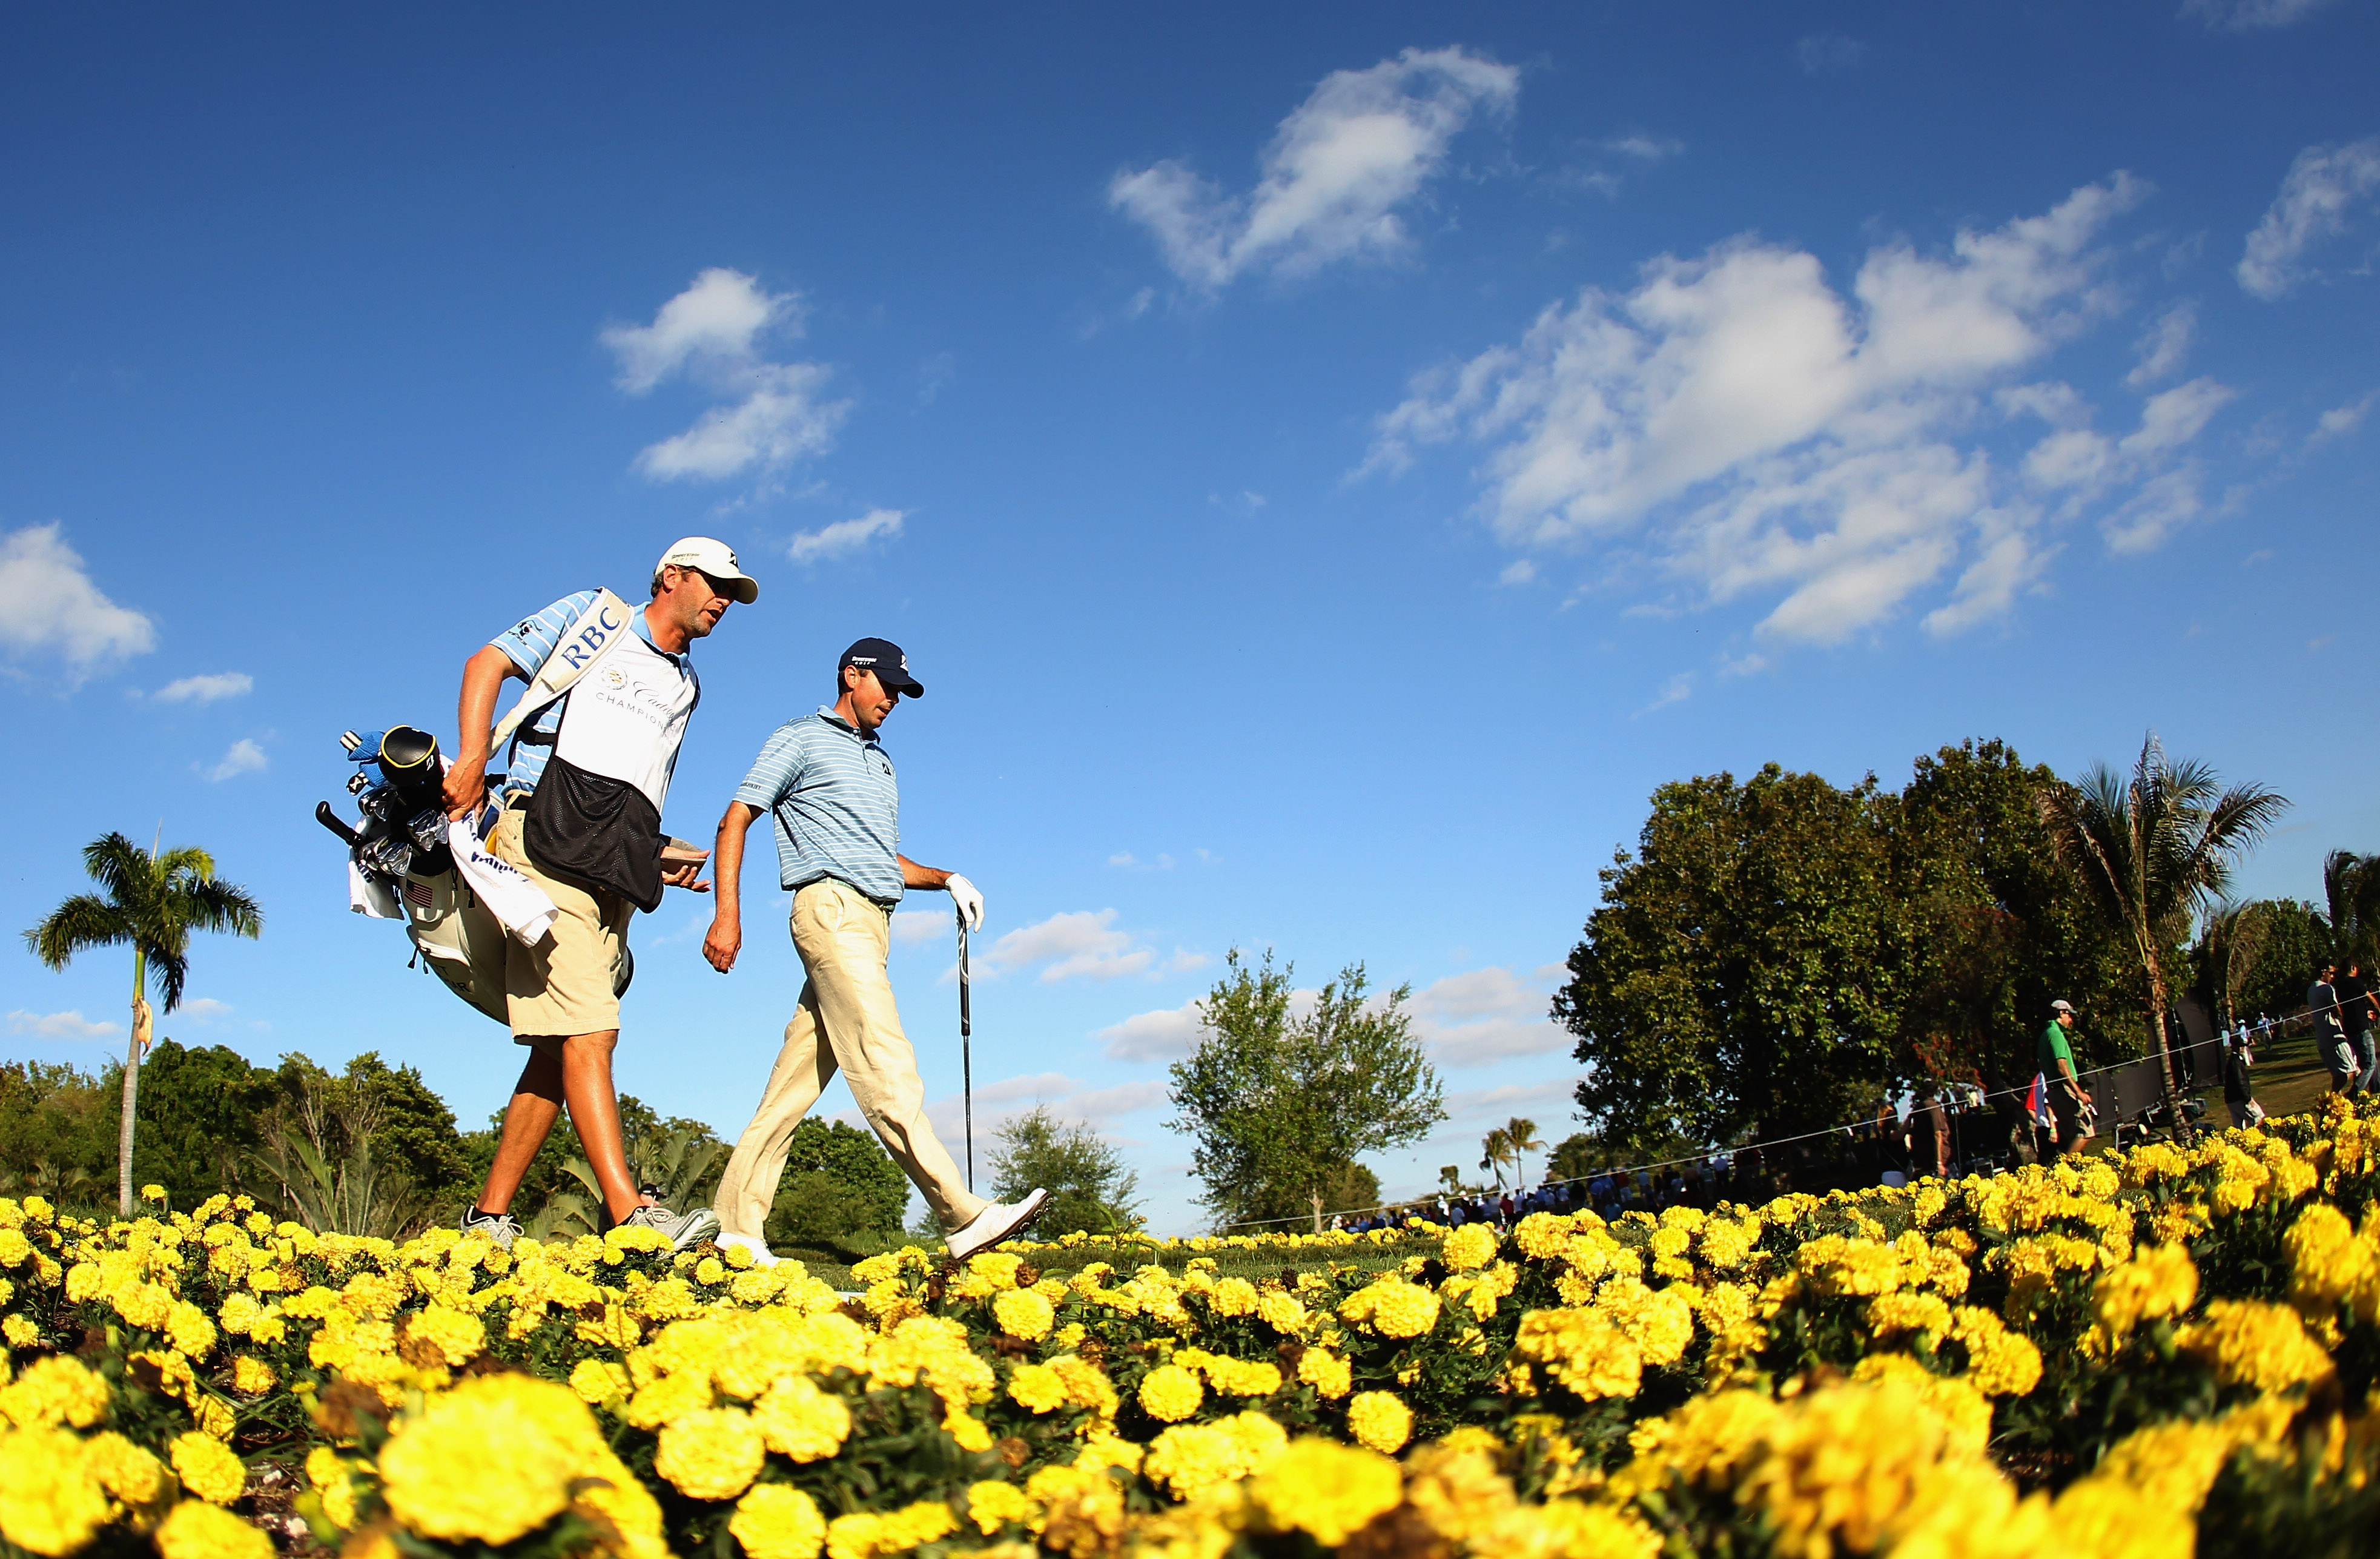 DORAL, FL - MARCH 13:  Matt Kuchar walks off the 15th tee with his caddie Lance Bennett during the final round of the 2011 WGC- Cadillac Championship at the TPC Blue Monster at the Doral Golf Resort and Spa on March 13, 2011 in Doral, Florida.  (Photo by